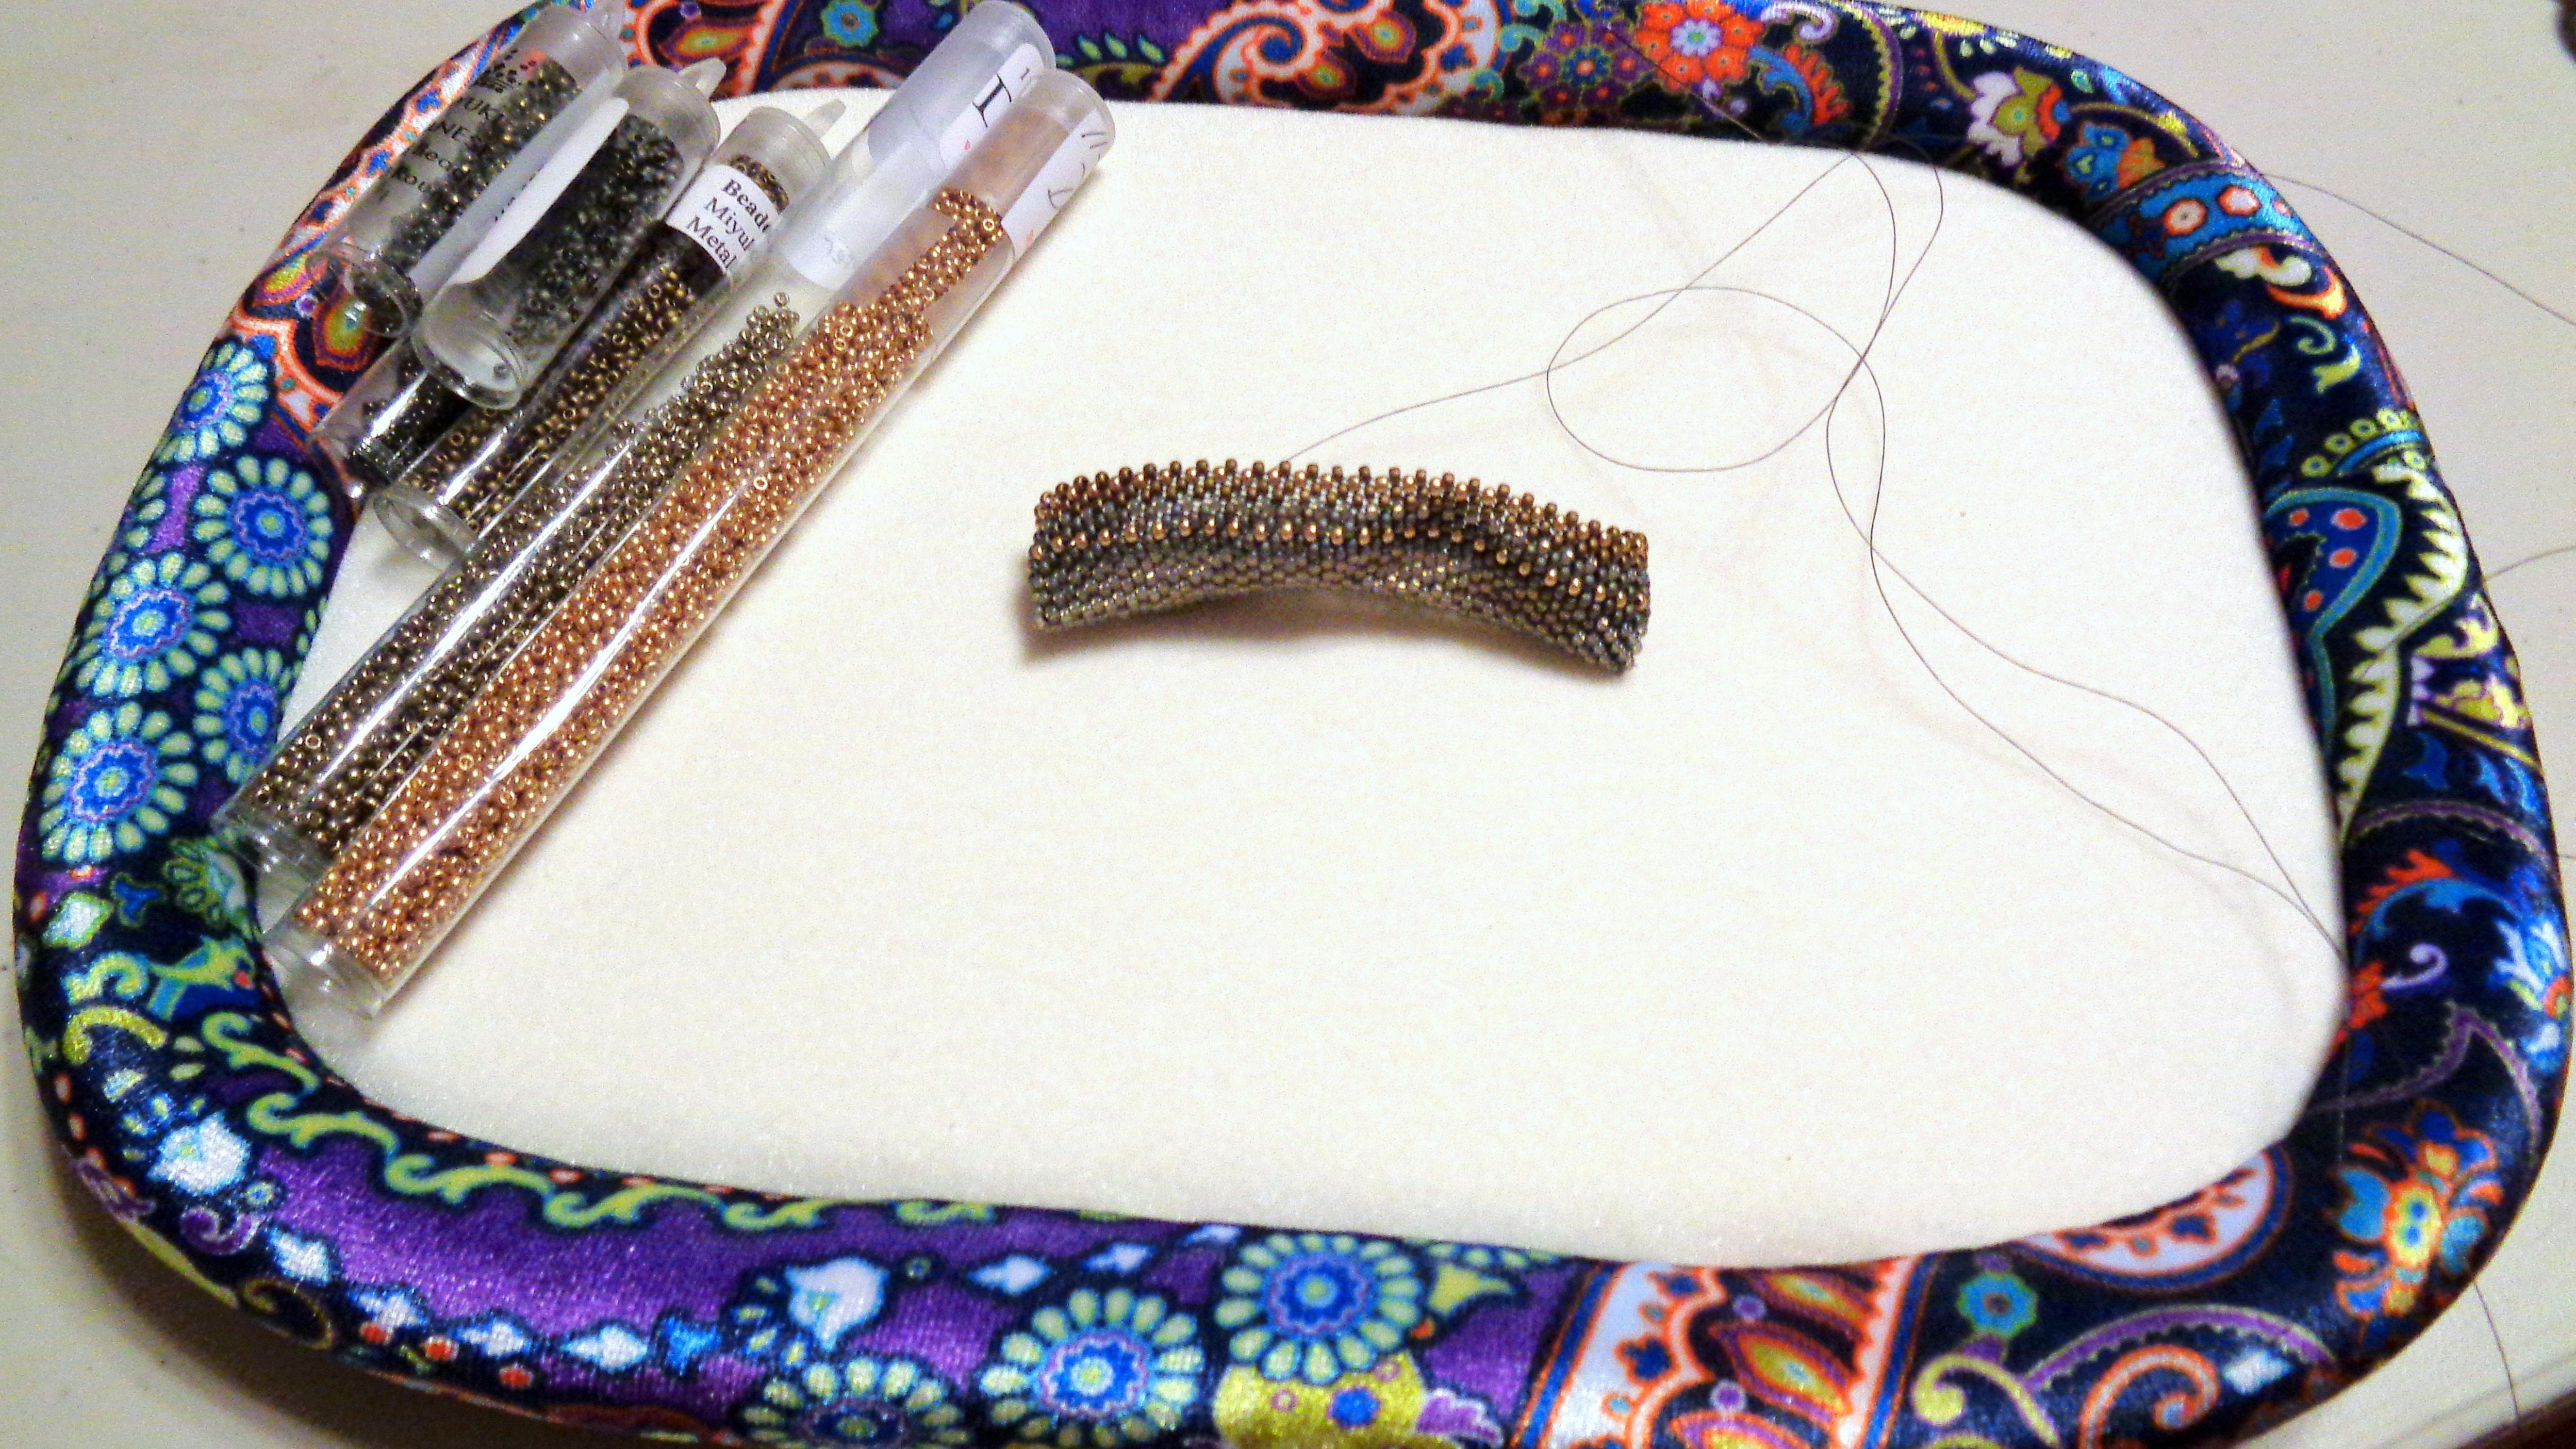 Wooden Fabric Beading Board Beading Mat Bead Tray for DIY Craft Supplies